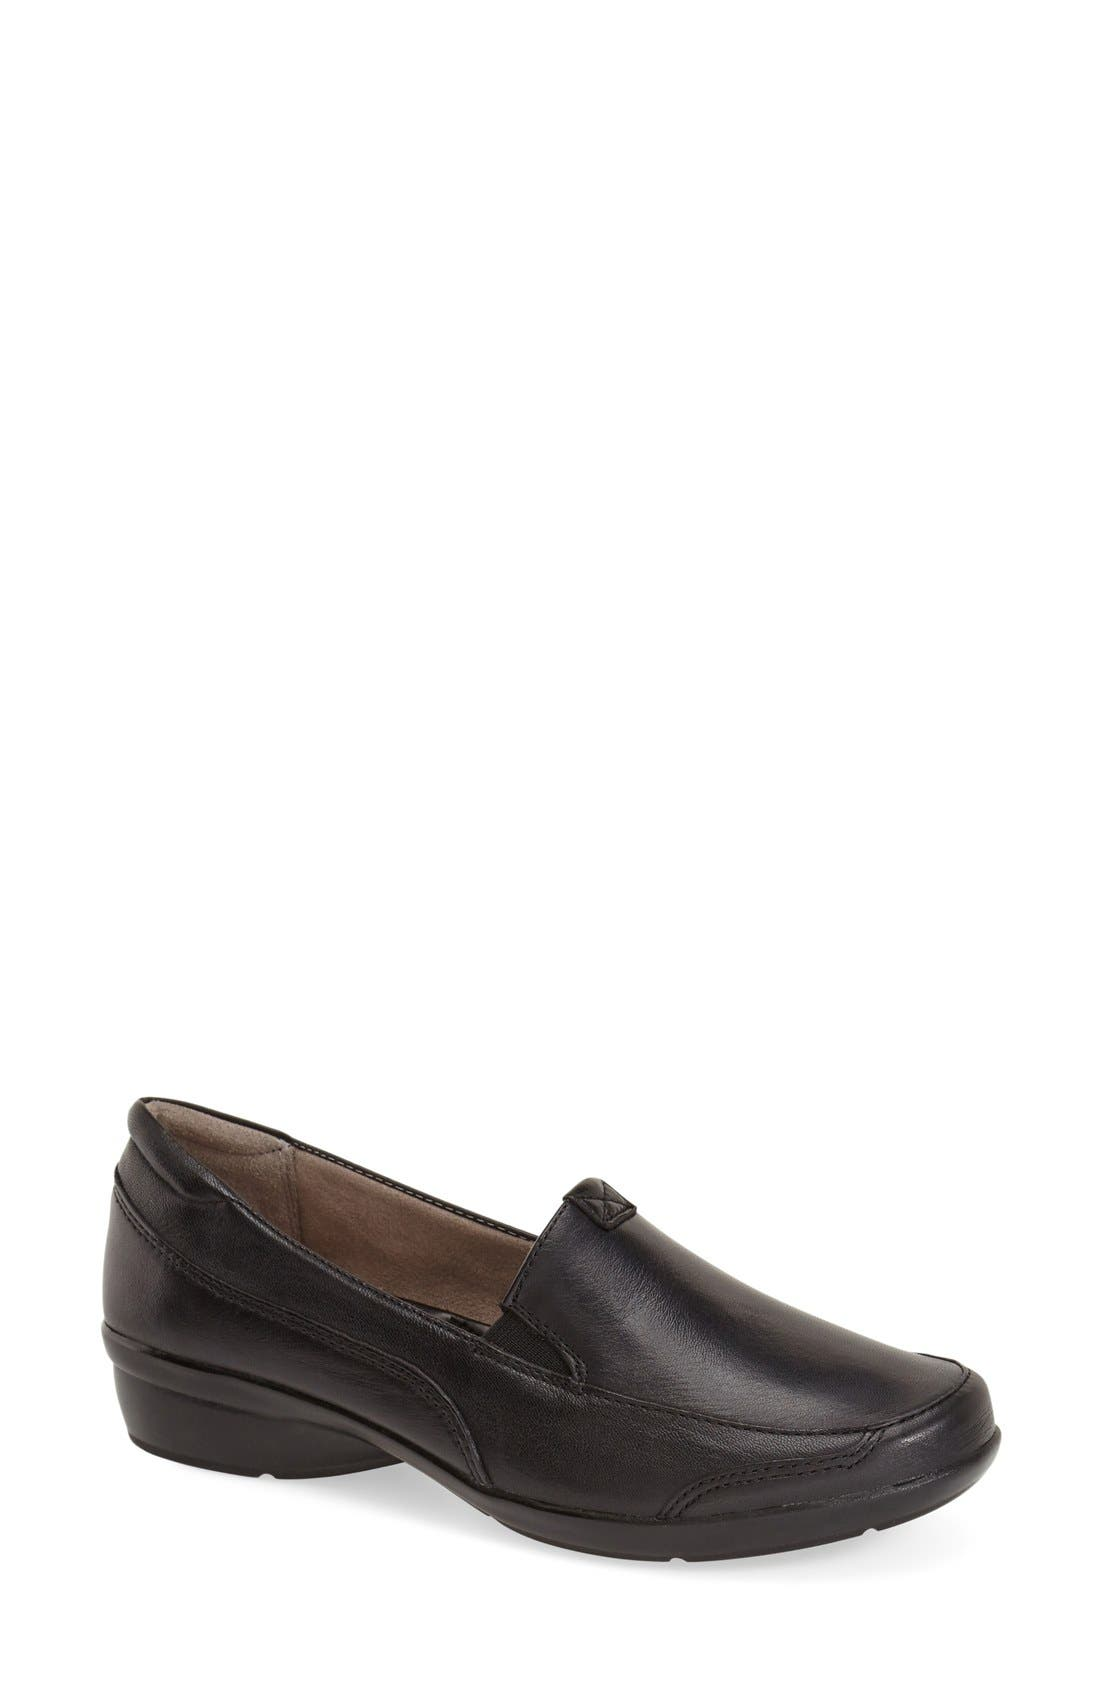 Alternate Image 1 Selected - Naturalizer 'Channing' Loafer (Women)